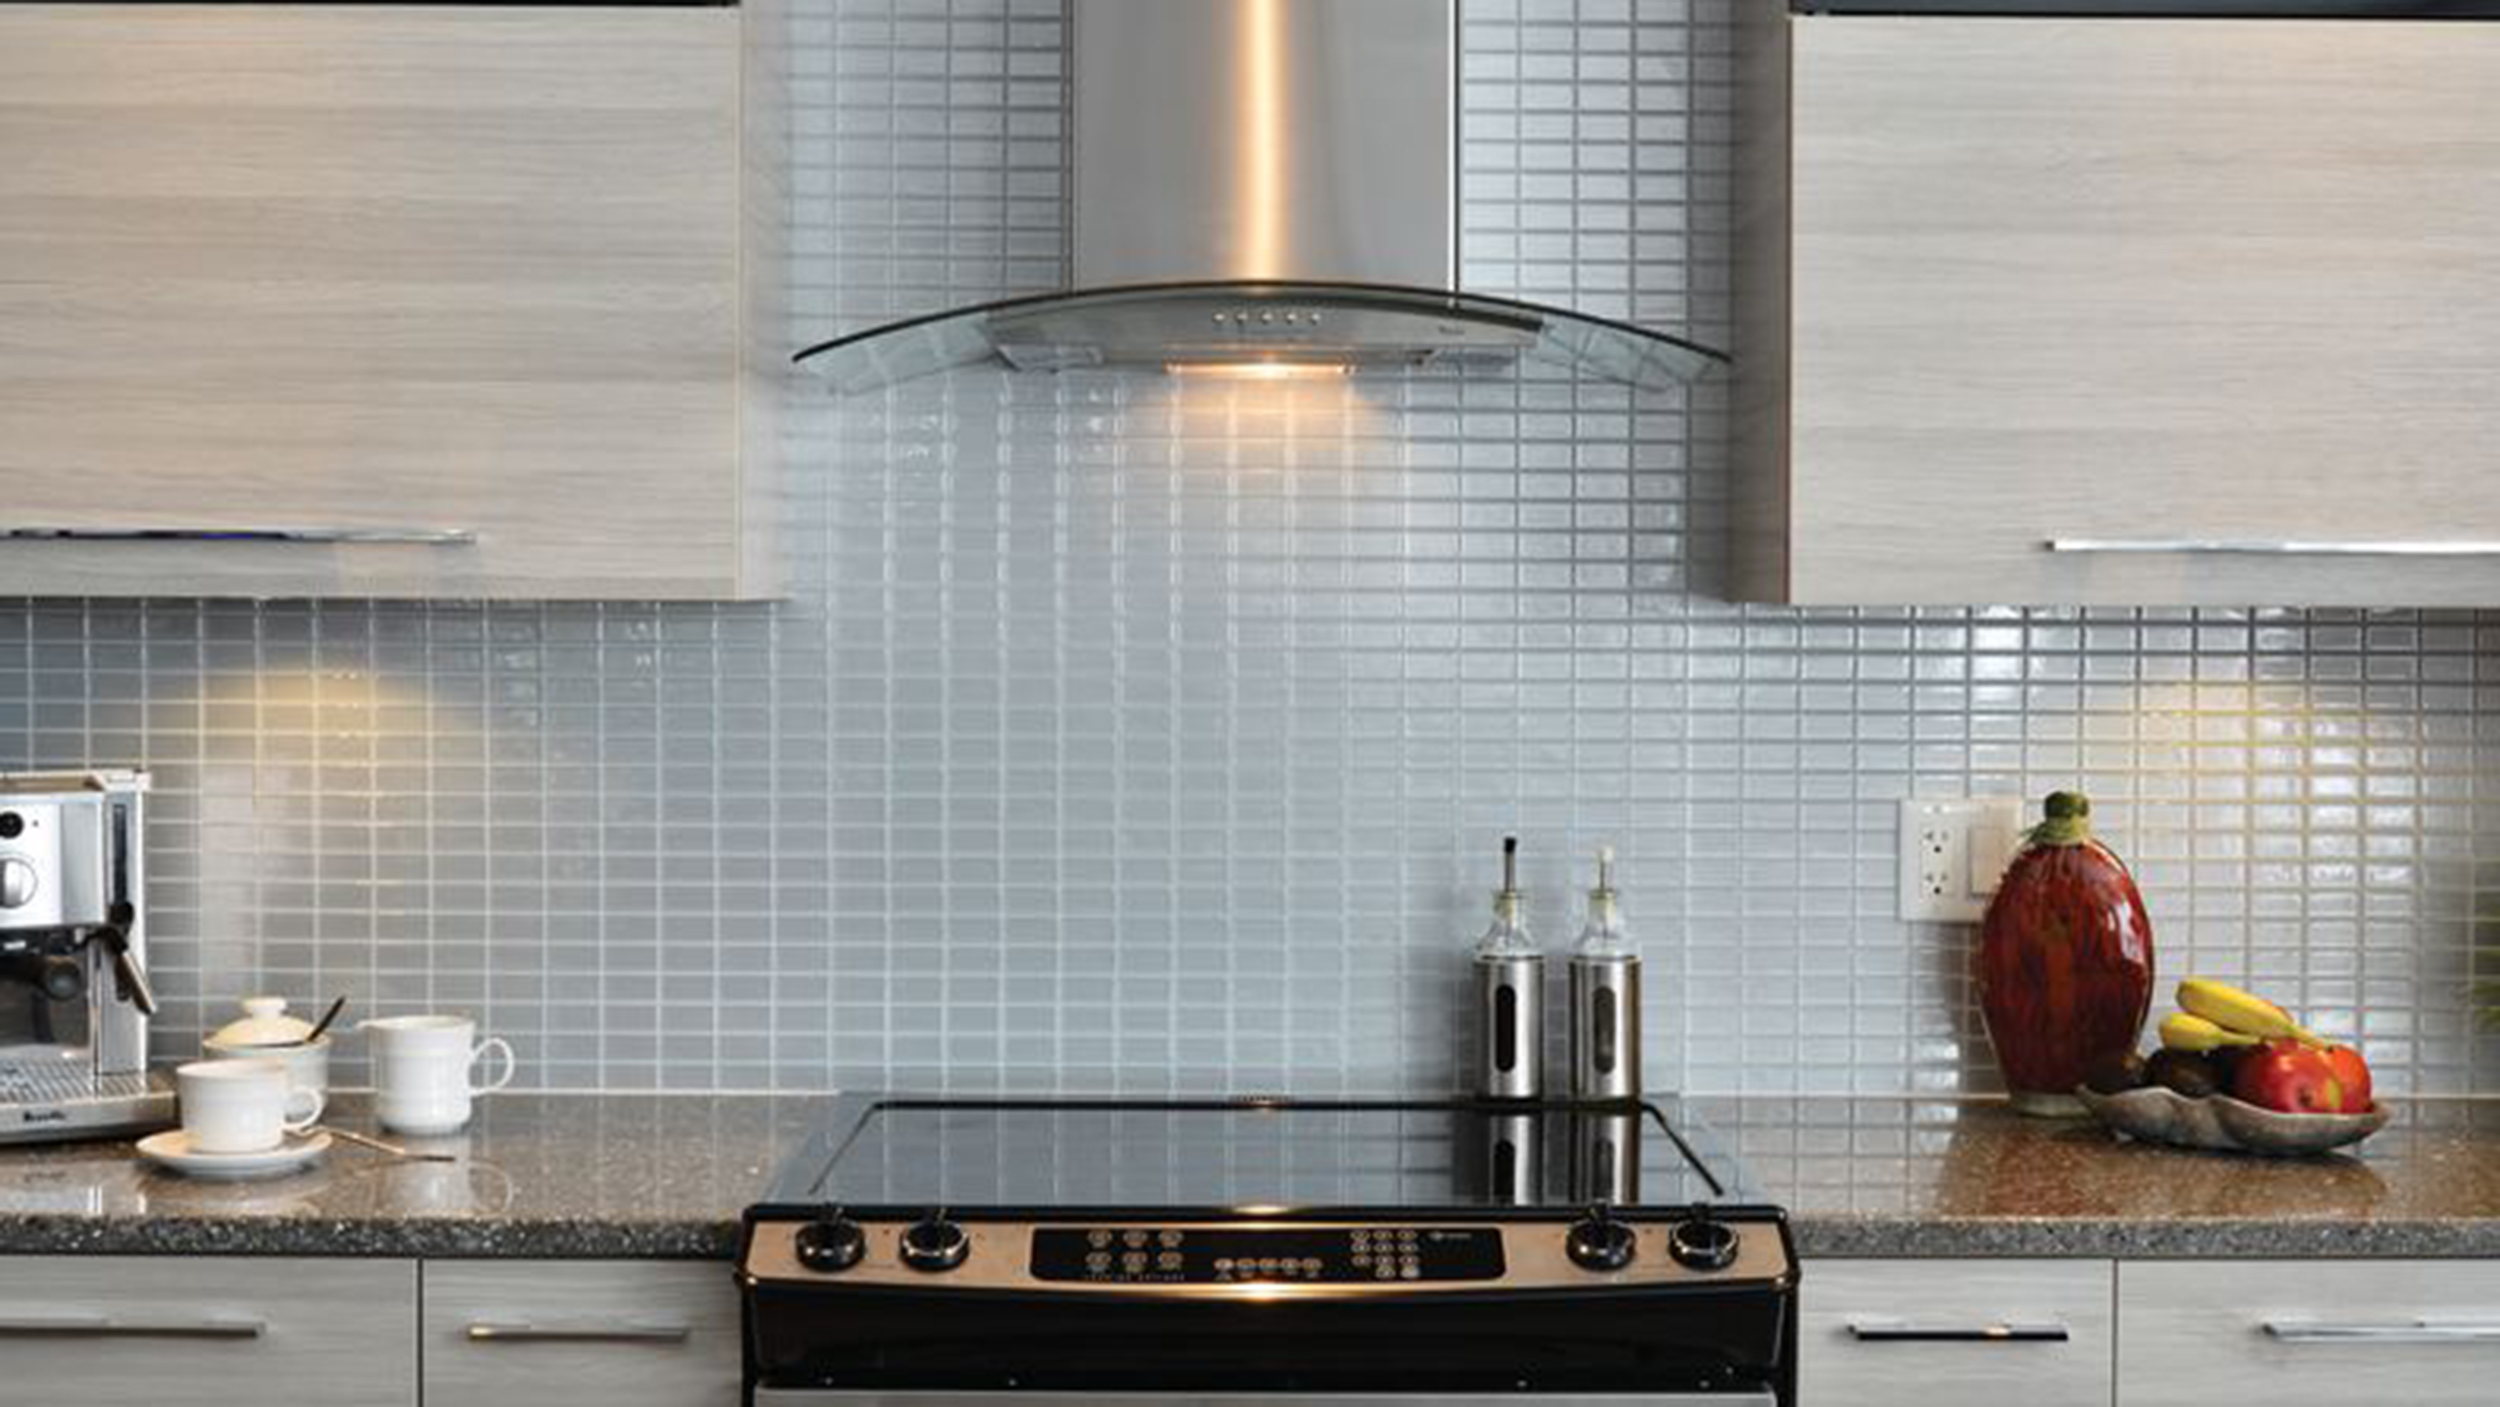 backsplash tile home depot 2. Kitchen tile makeover  Use Smart Tiles to update your backsplash TODAY com